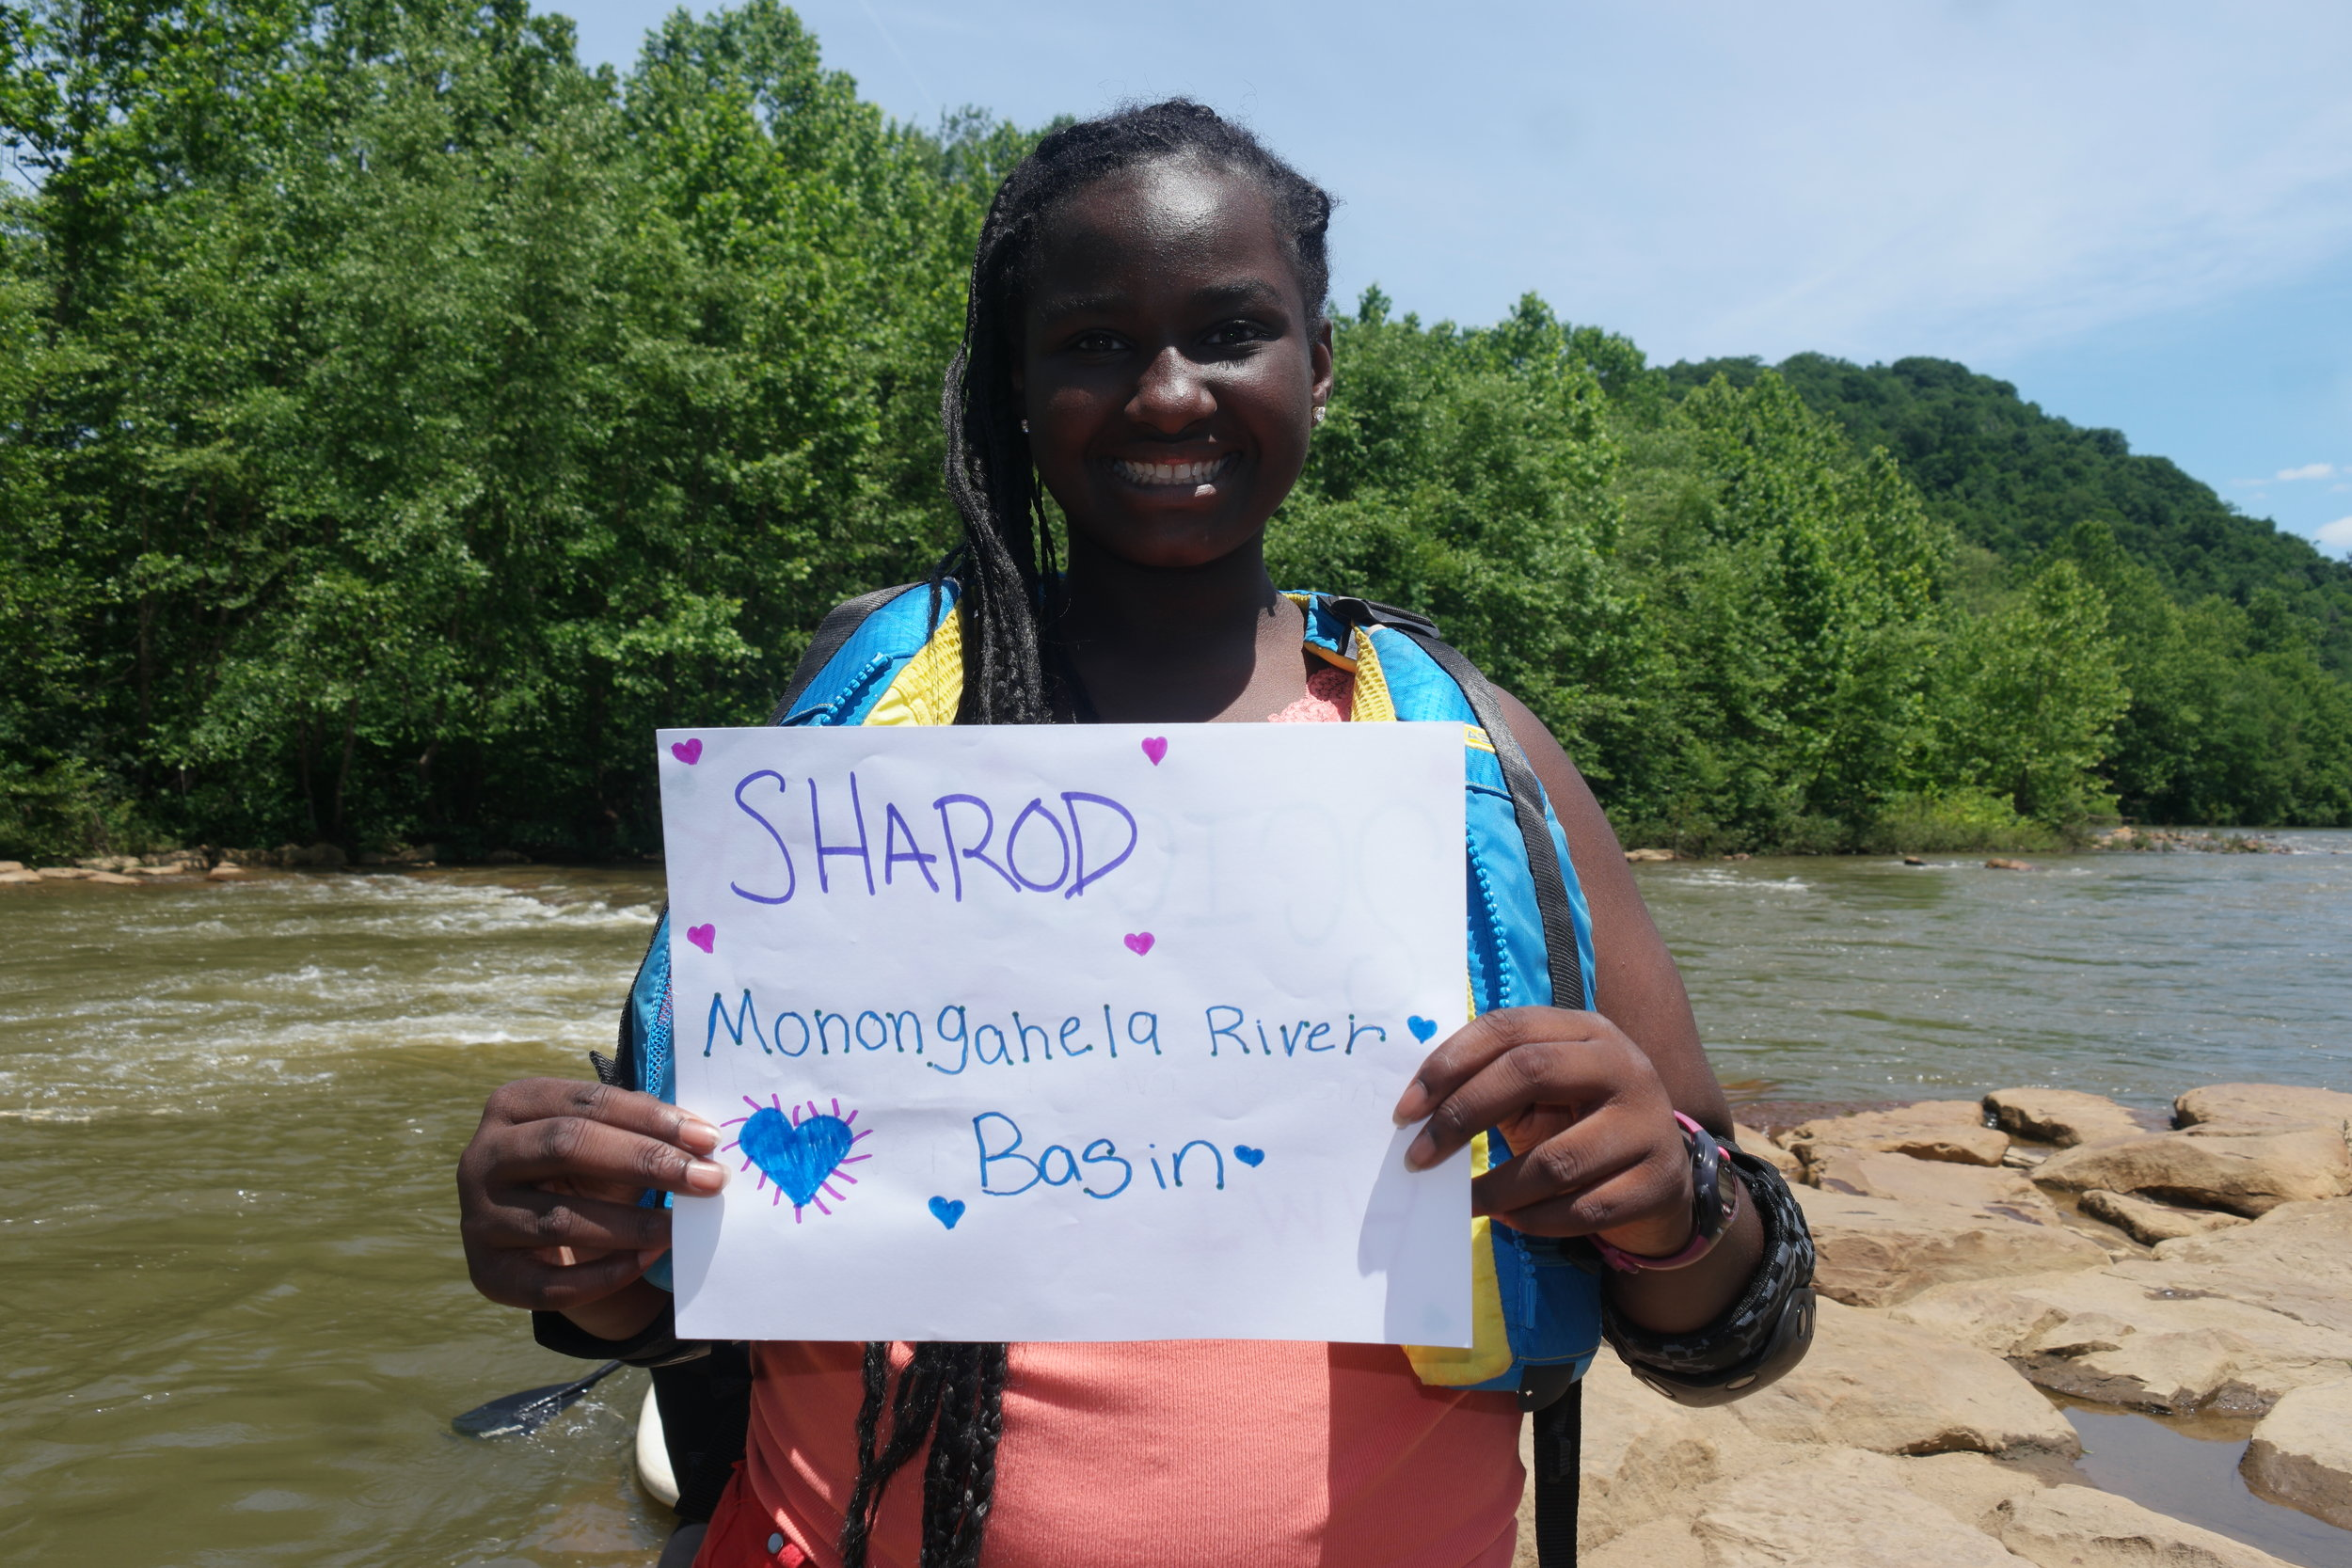 Participants learned what watershed they lived in through an online mapping system!